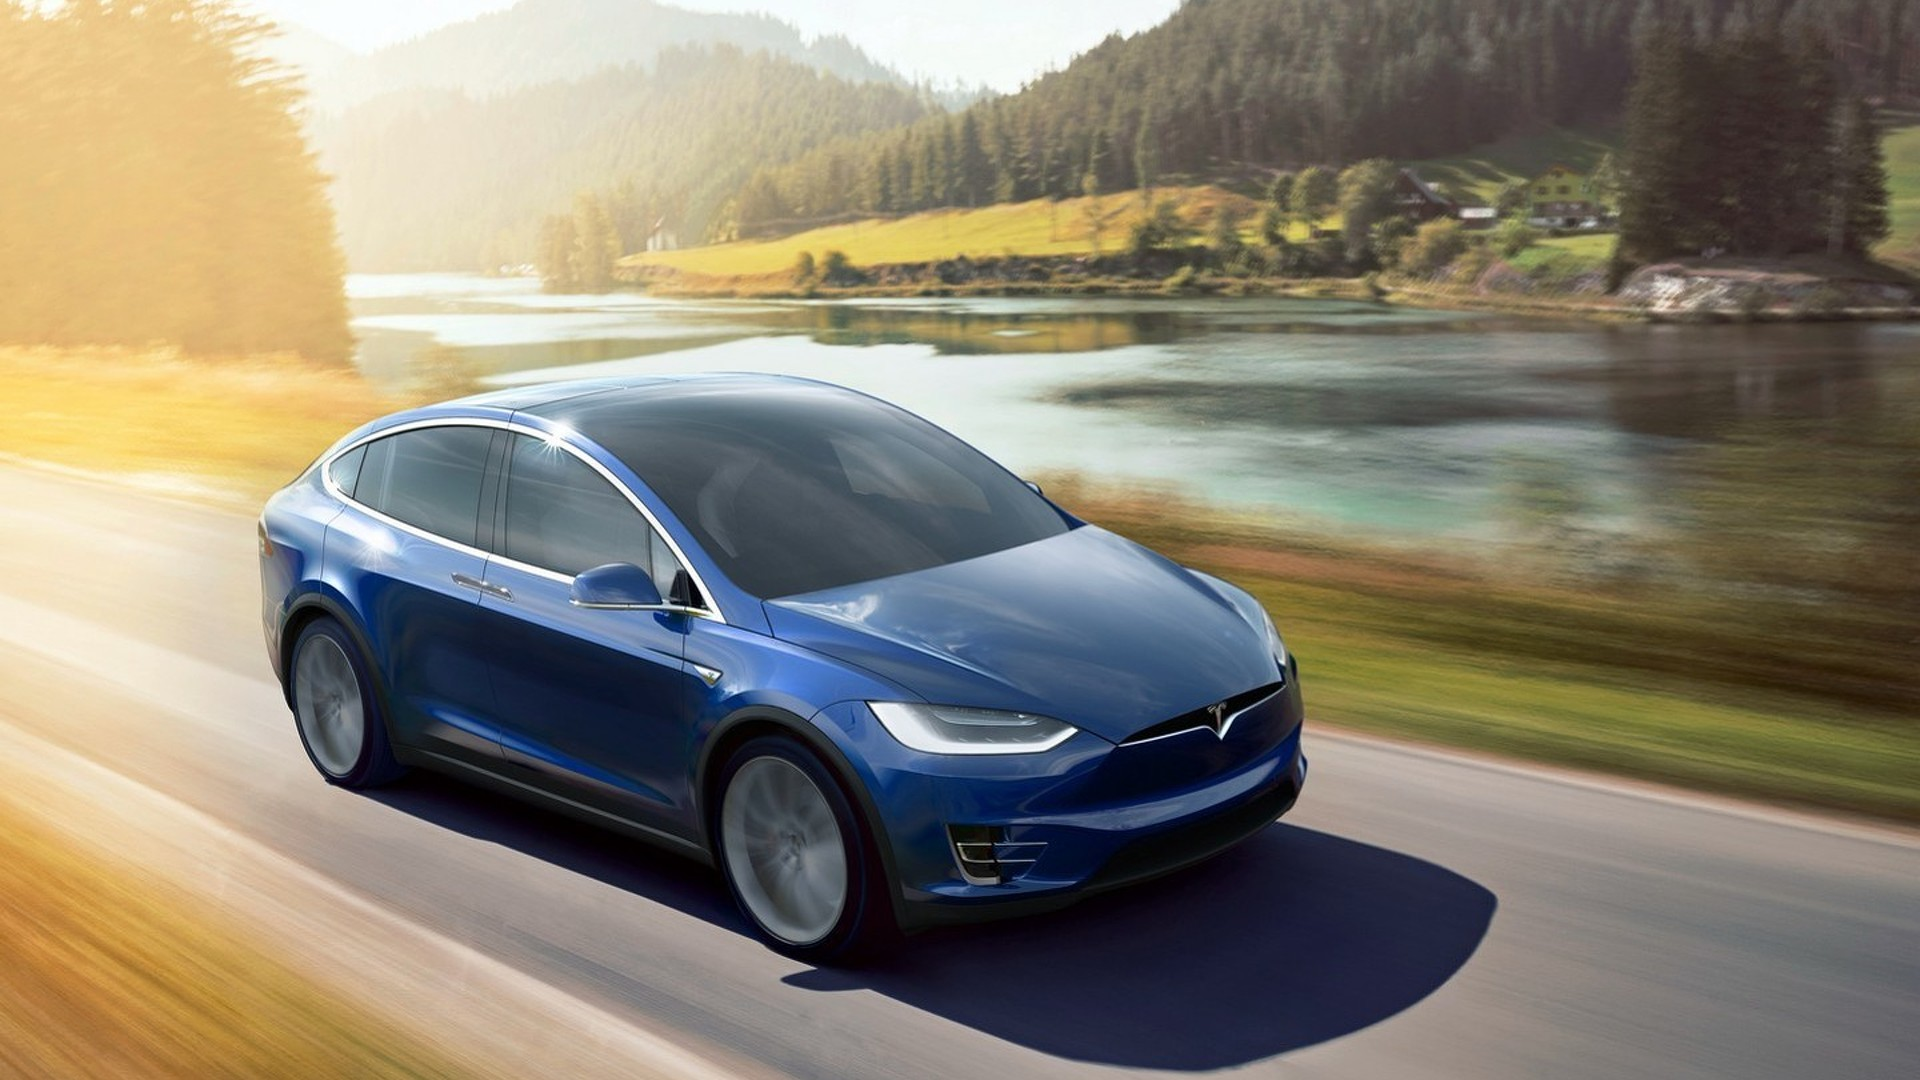 Tesla not on track for projected annual sales